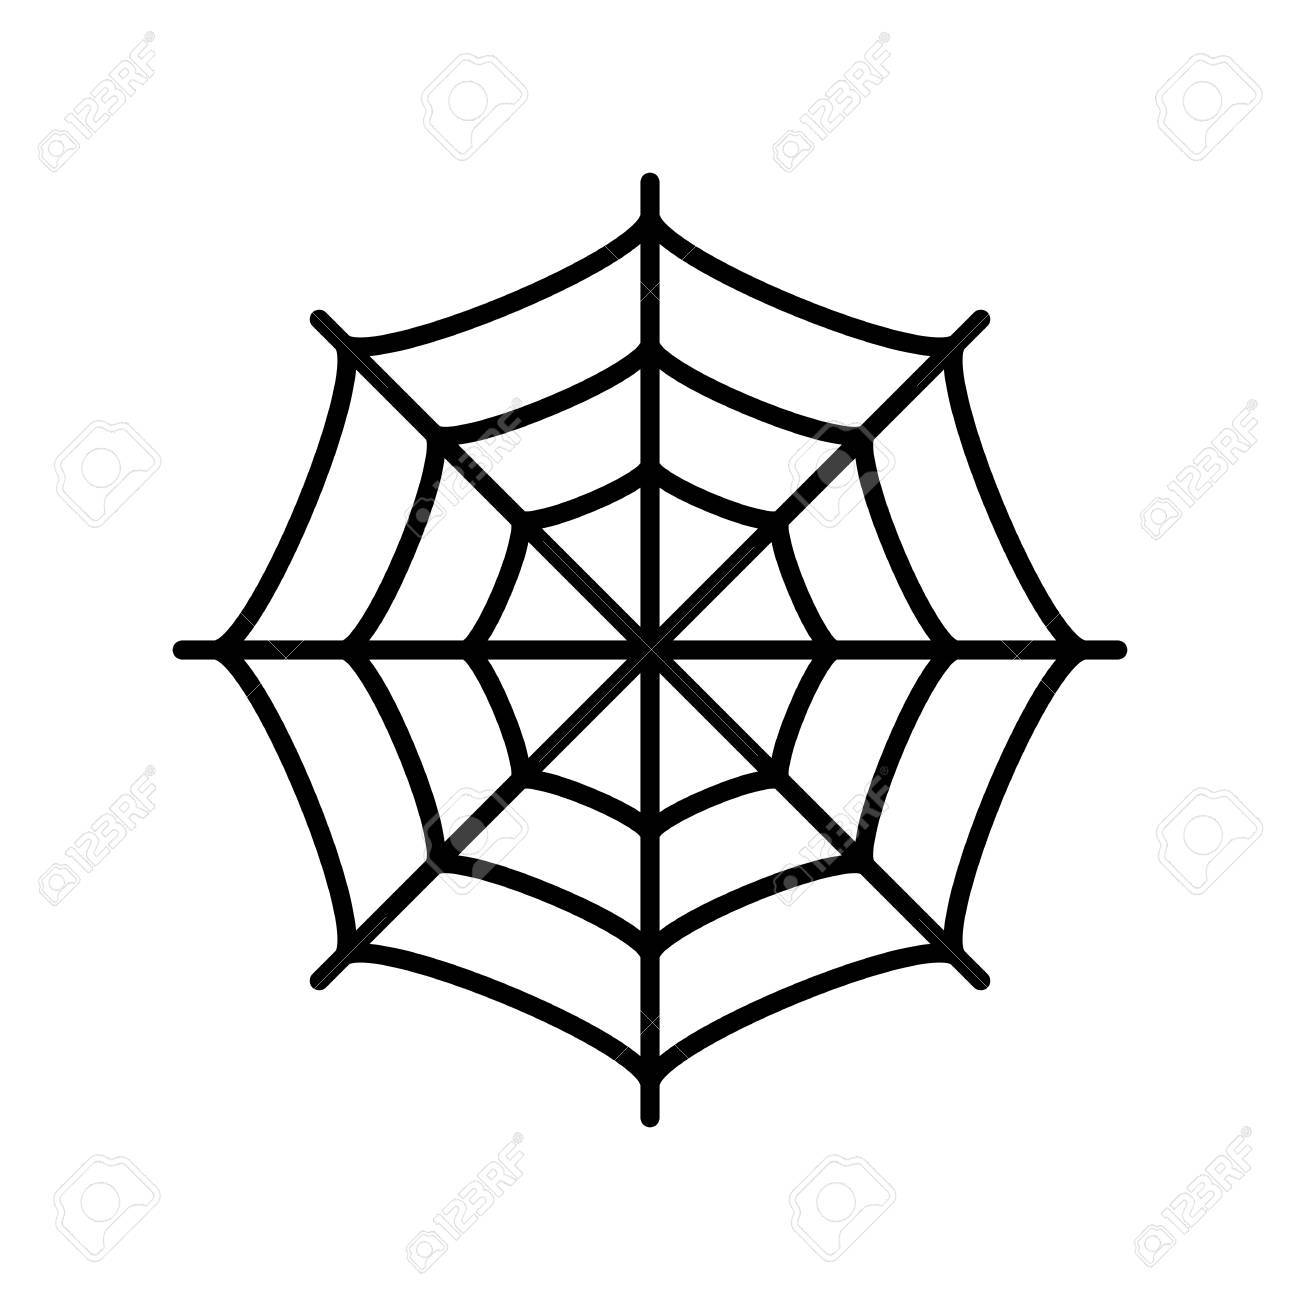 spider web vector icon royalty free cliparts vectors and stock rh 123rf com vector spider web corner free vector spider web pattern